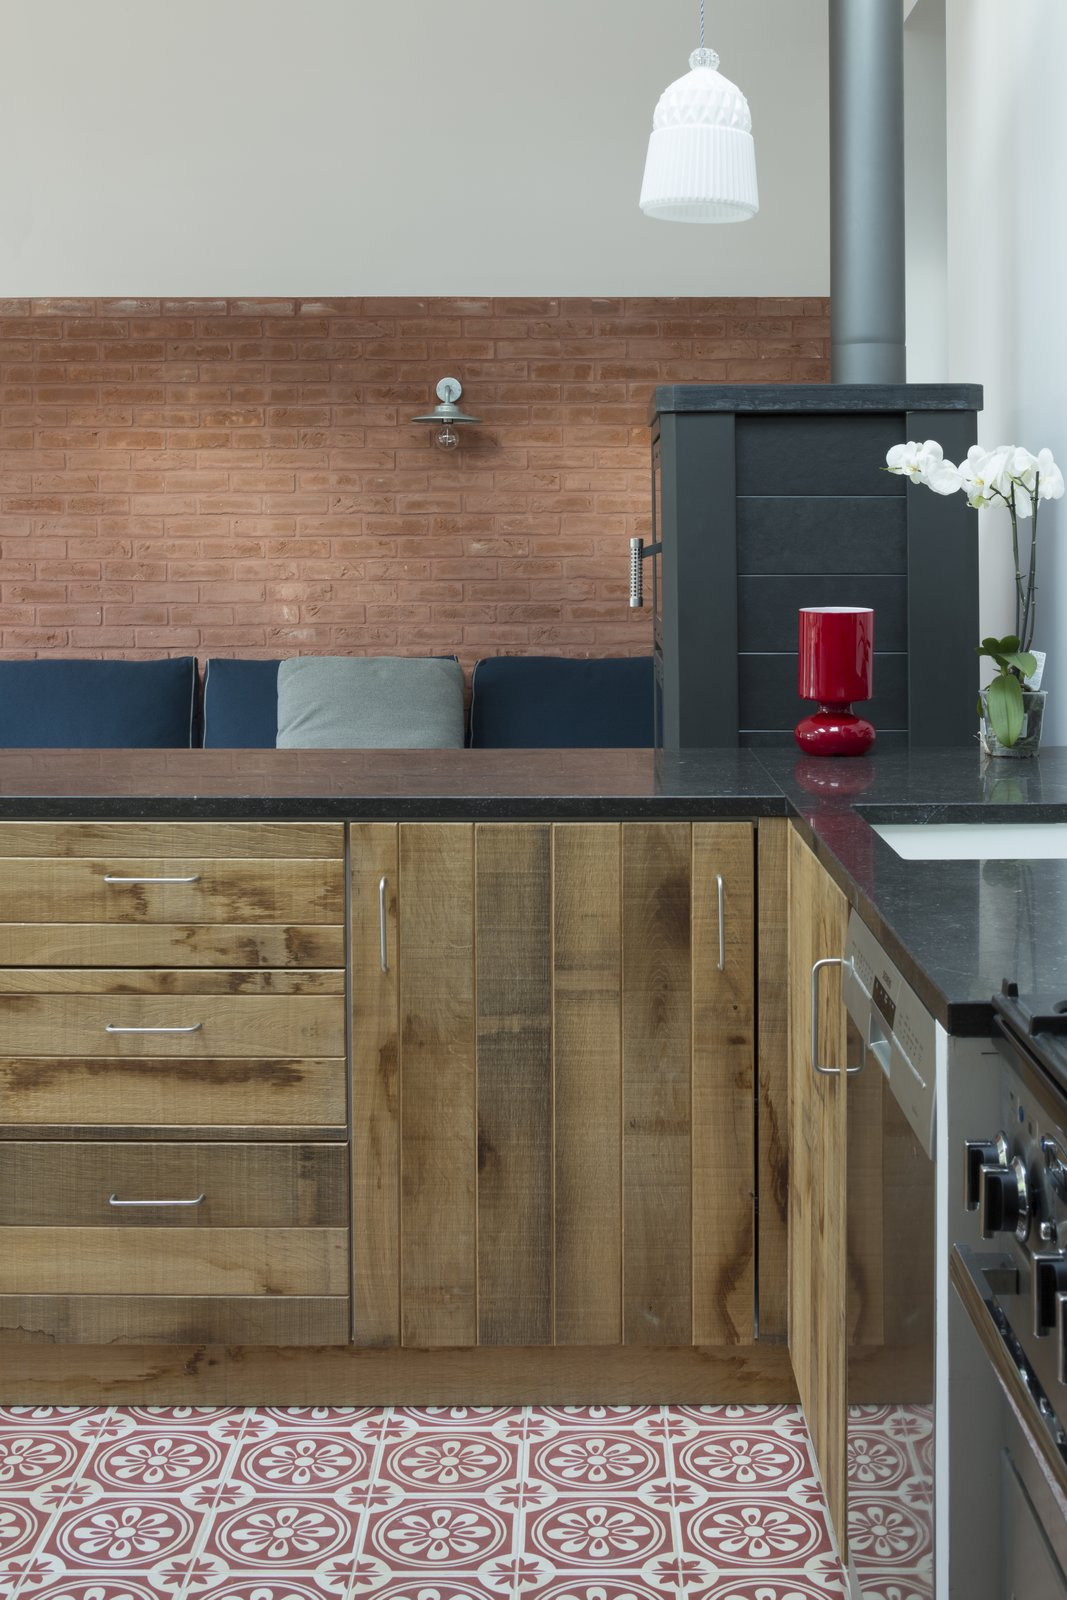 Carocim tiles and custom wood cupboards add lively details to the kitchen's contained space.